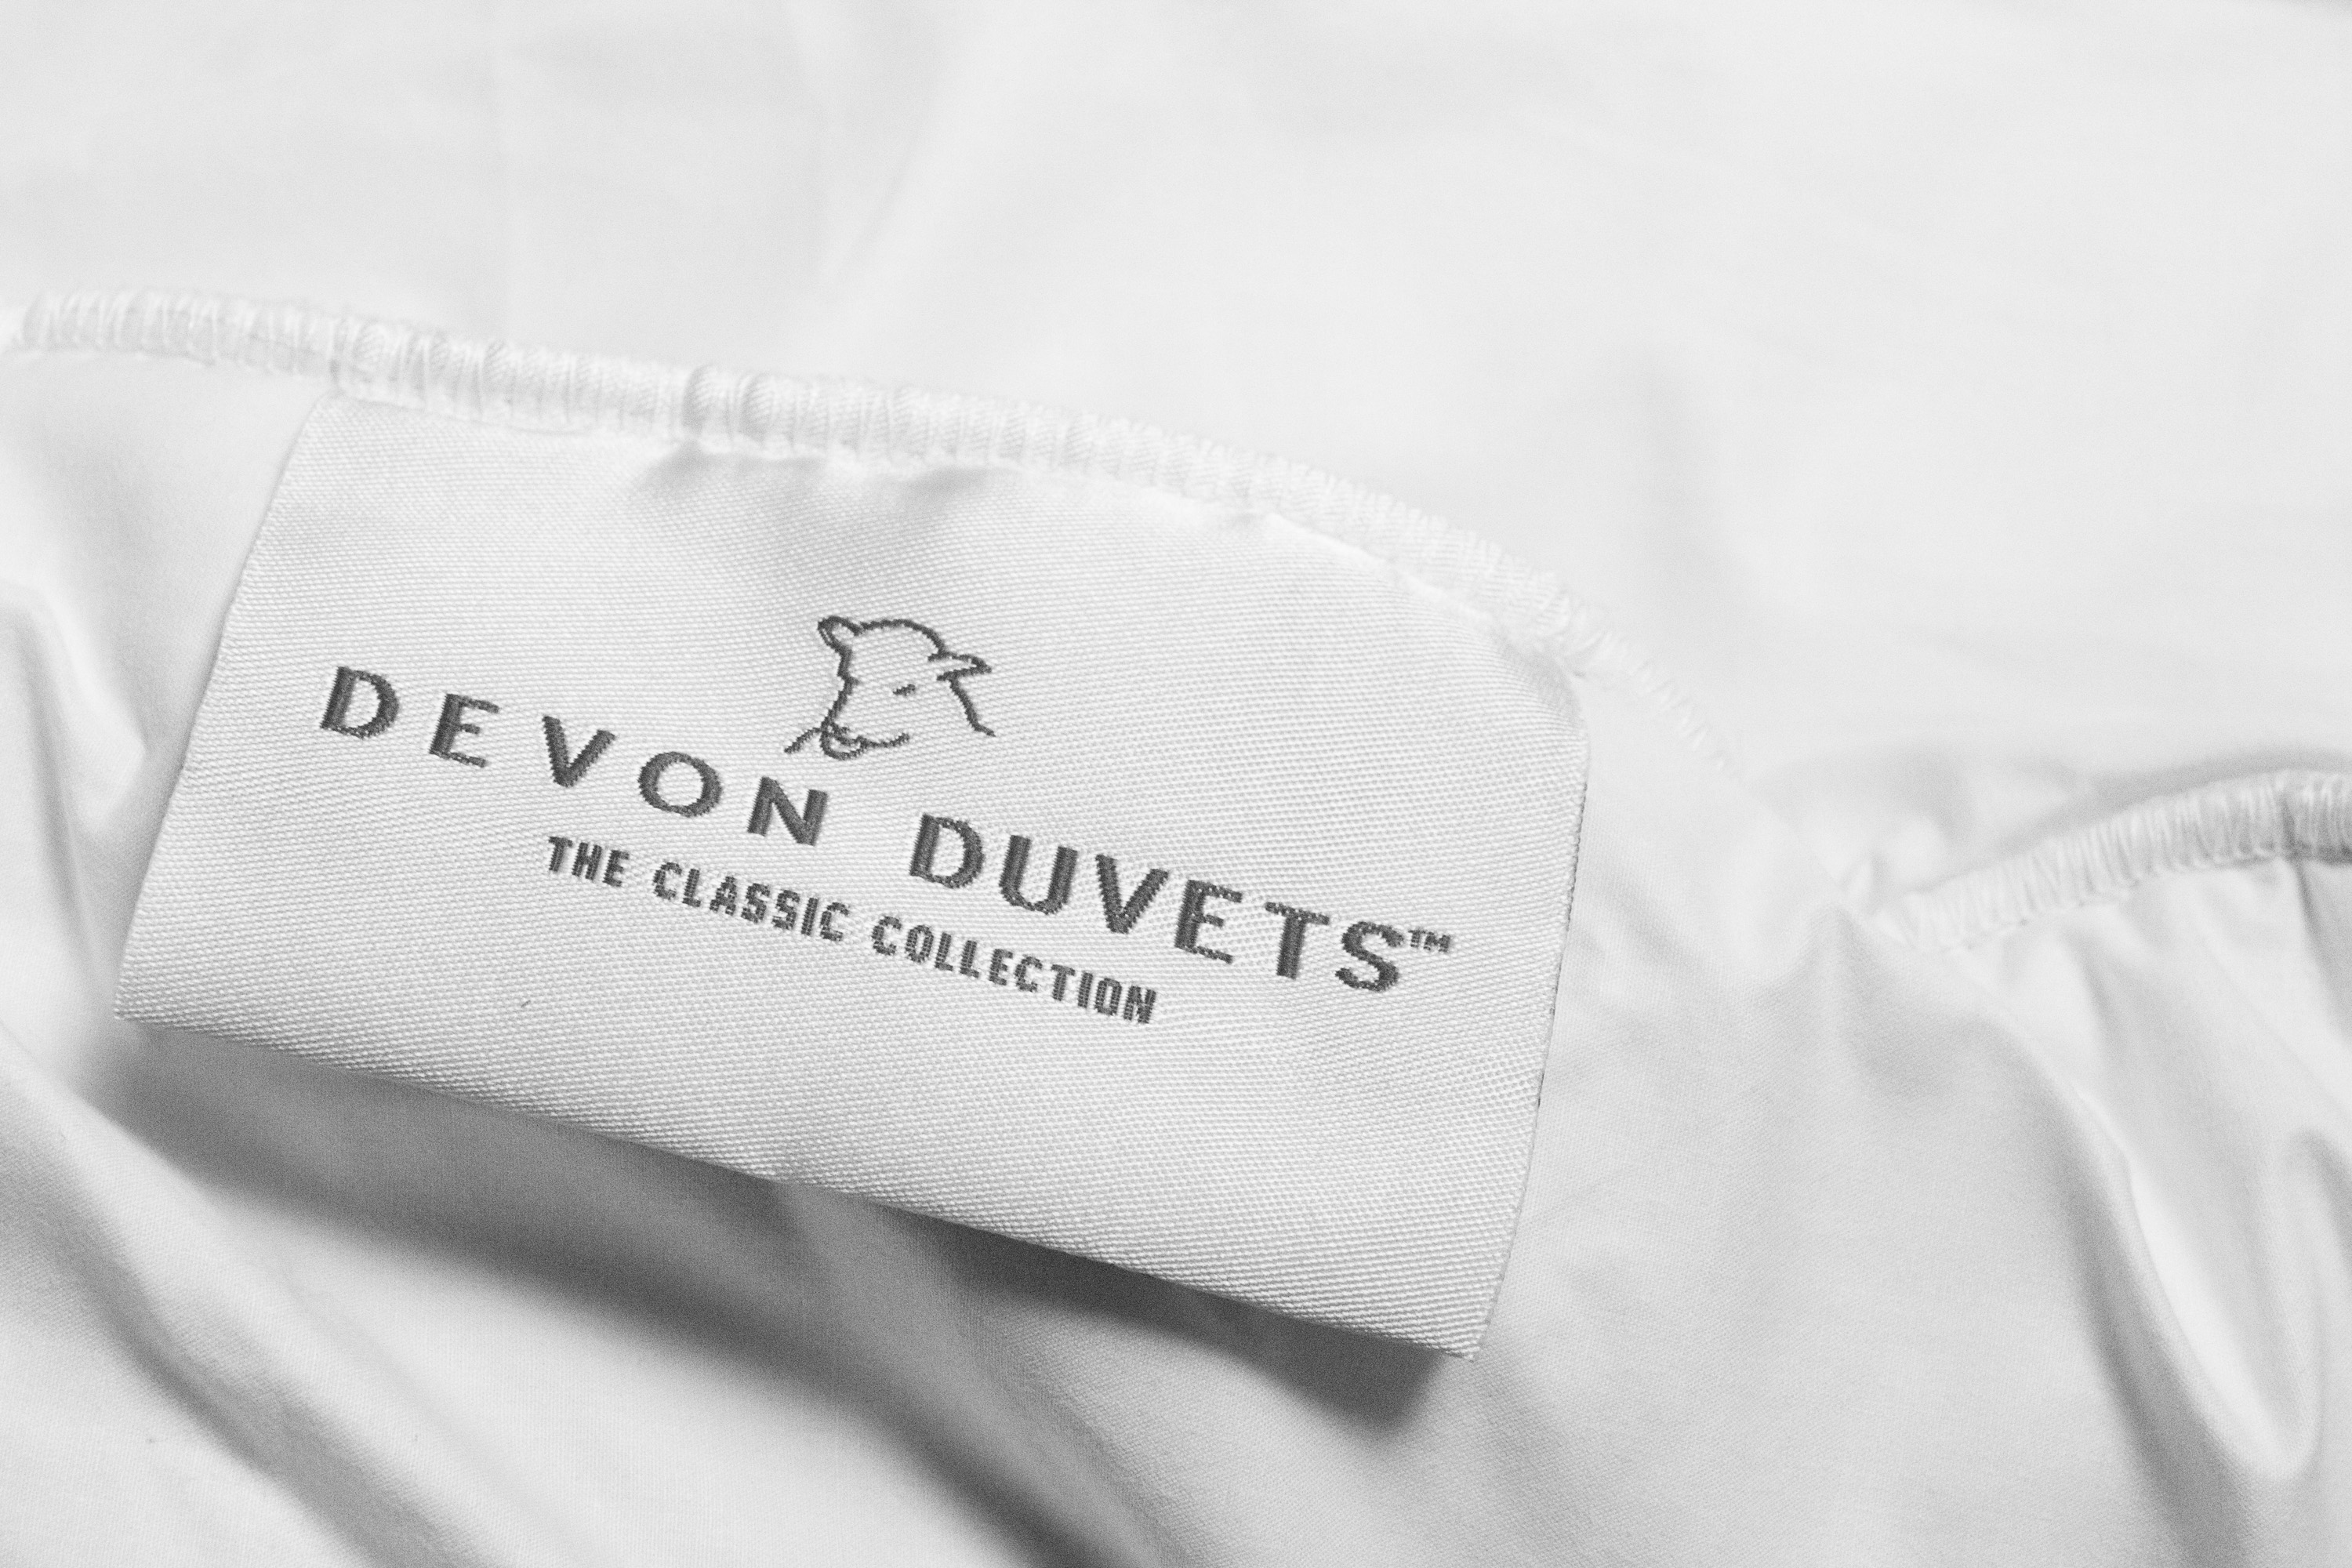 In Bed With Devon Duvets